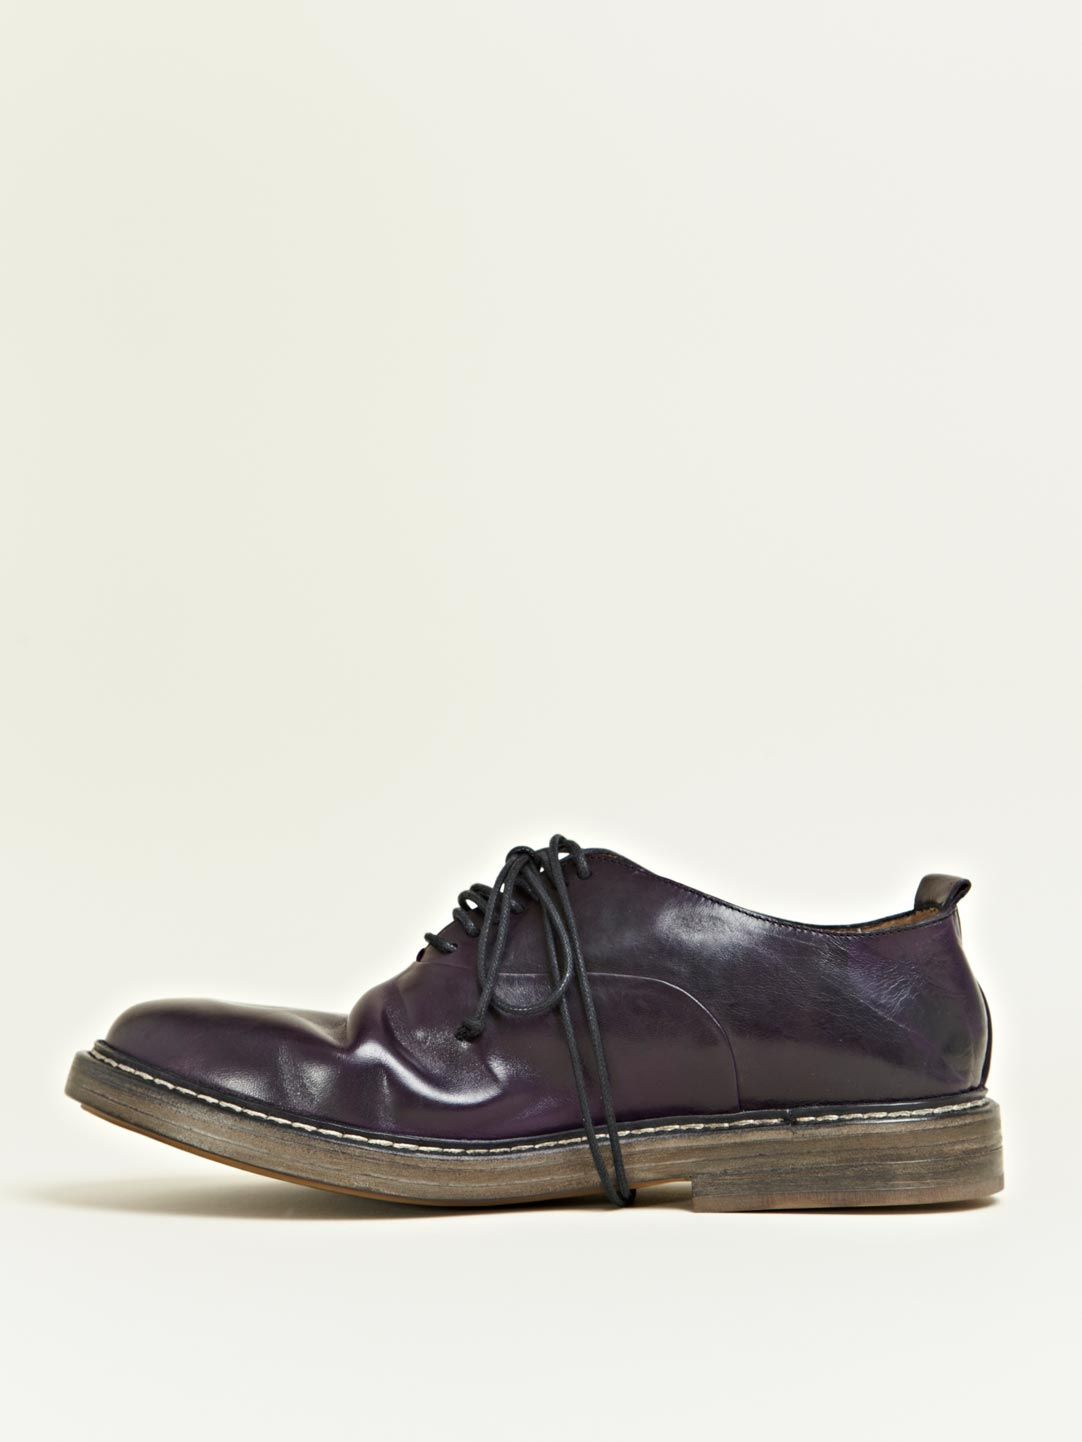 Marsell Petrolio Oxford Shoes